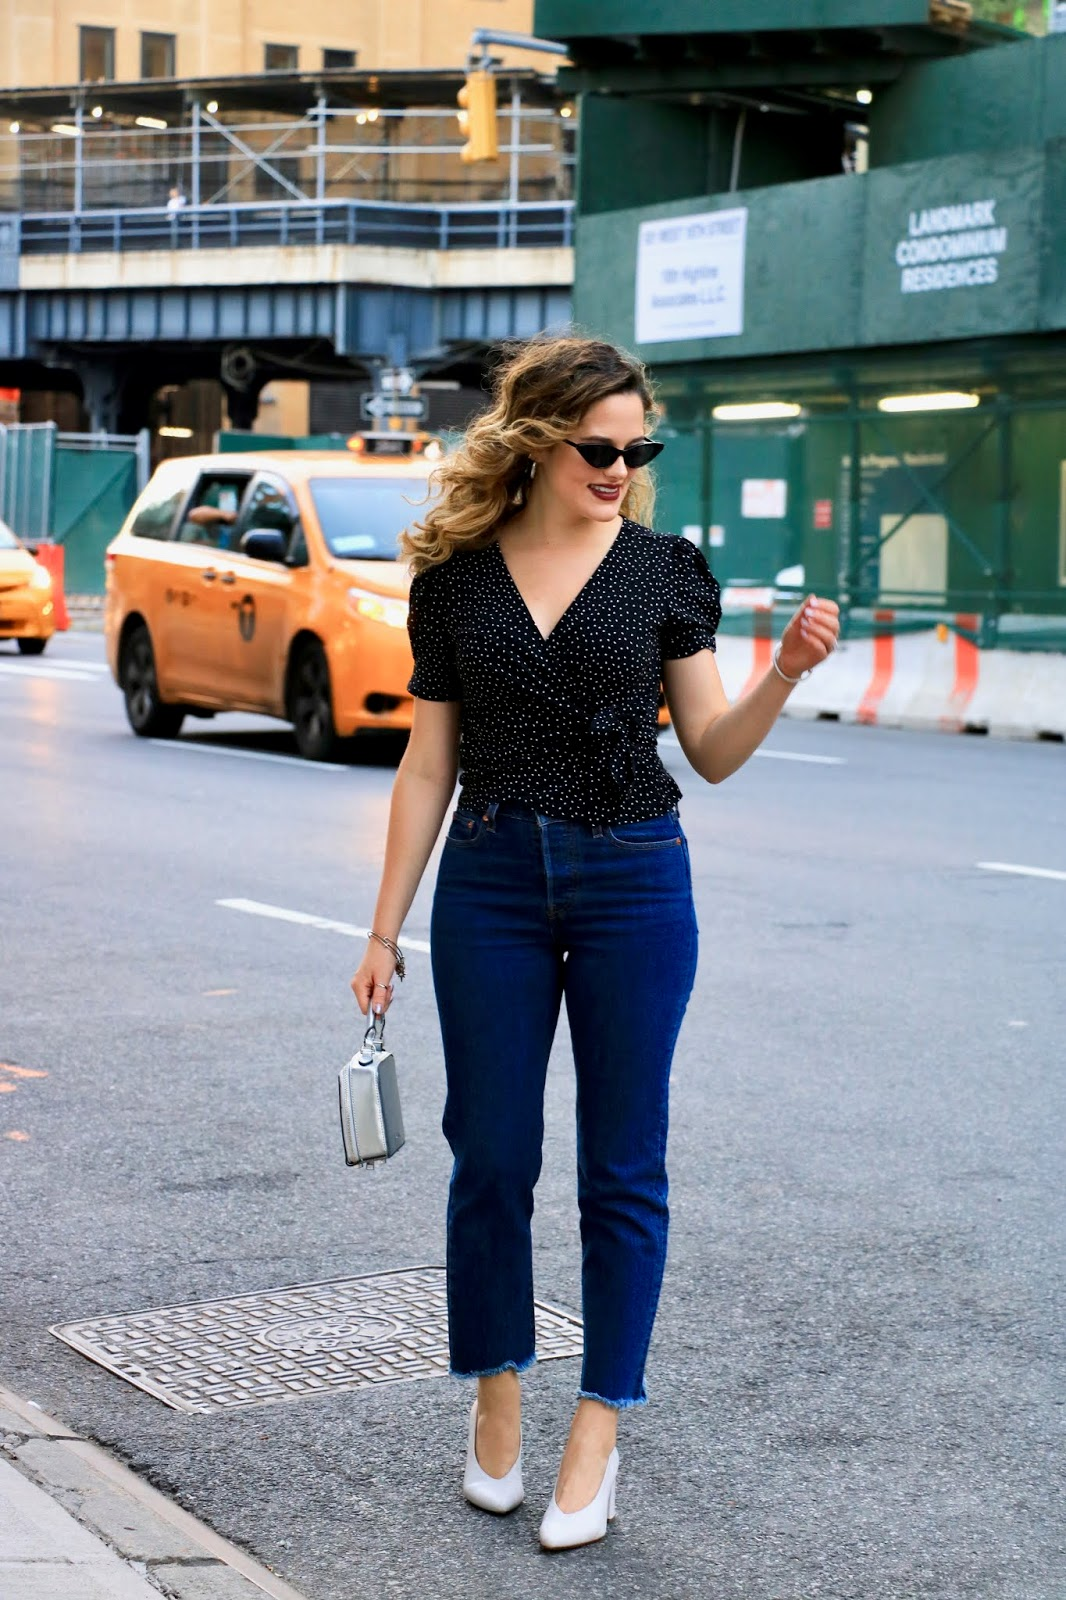 Nyc fashion blogger Kathleen Harper wearing Levi's wedgie jeans.